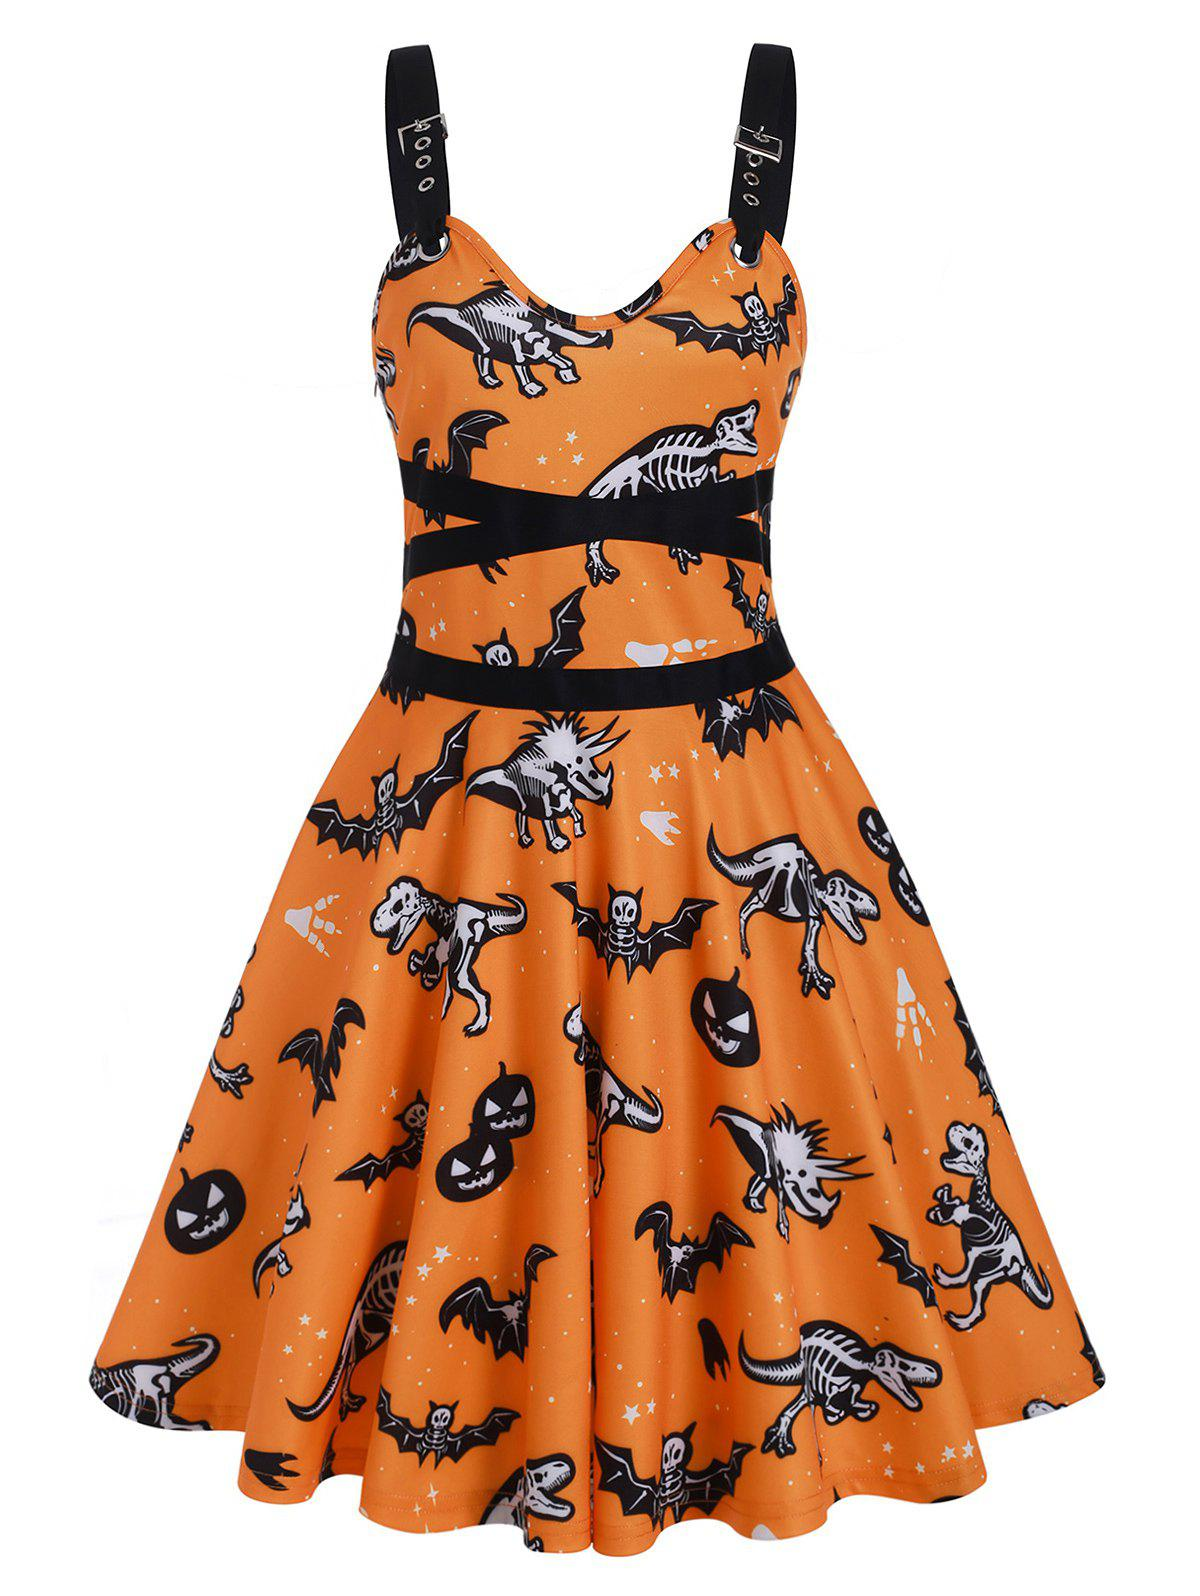 Dinosaur Bat Skeleton Sleeveless Halloween Dress - BASKET BALL ORANGE M